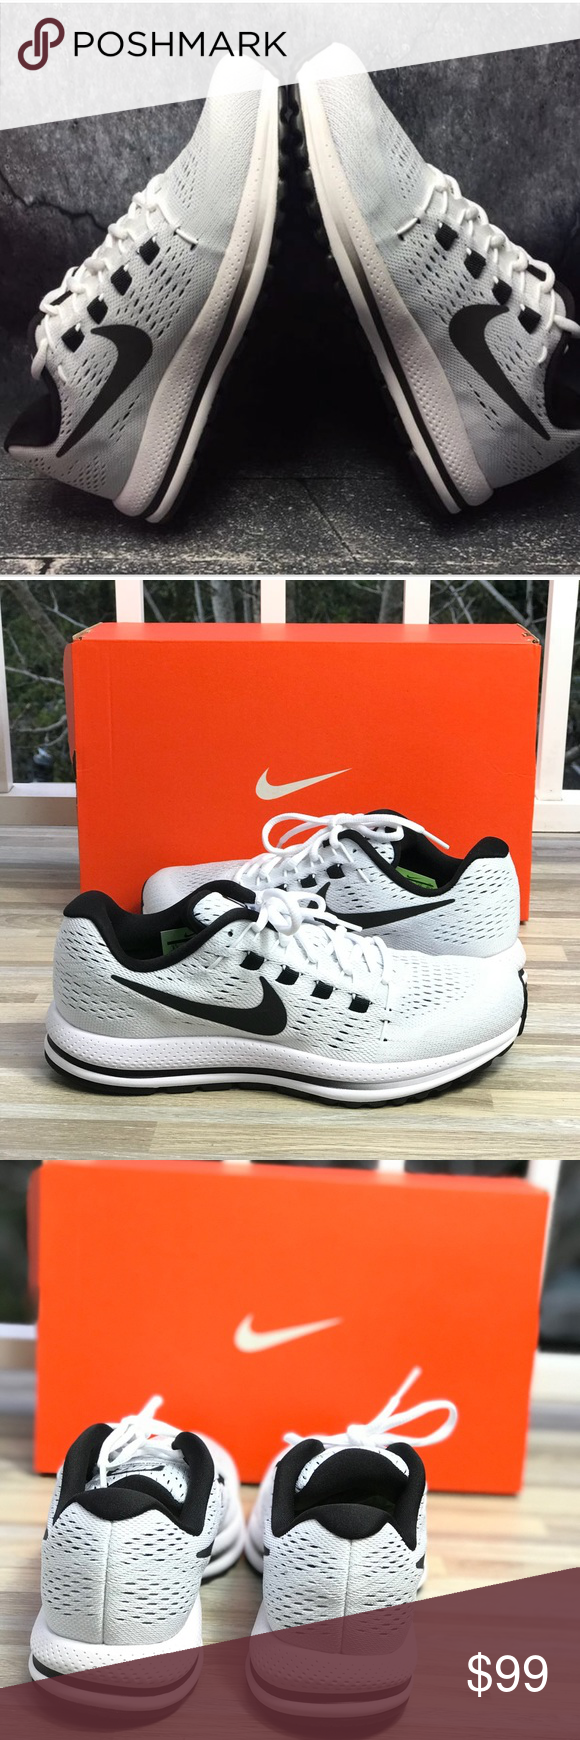 NWT Air Zoom Vomero 12 B/W Pure Platinum WMNS Shoes sneakers, Nike